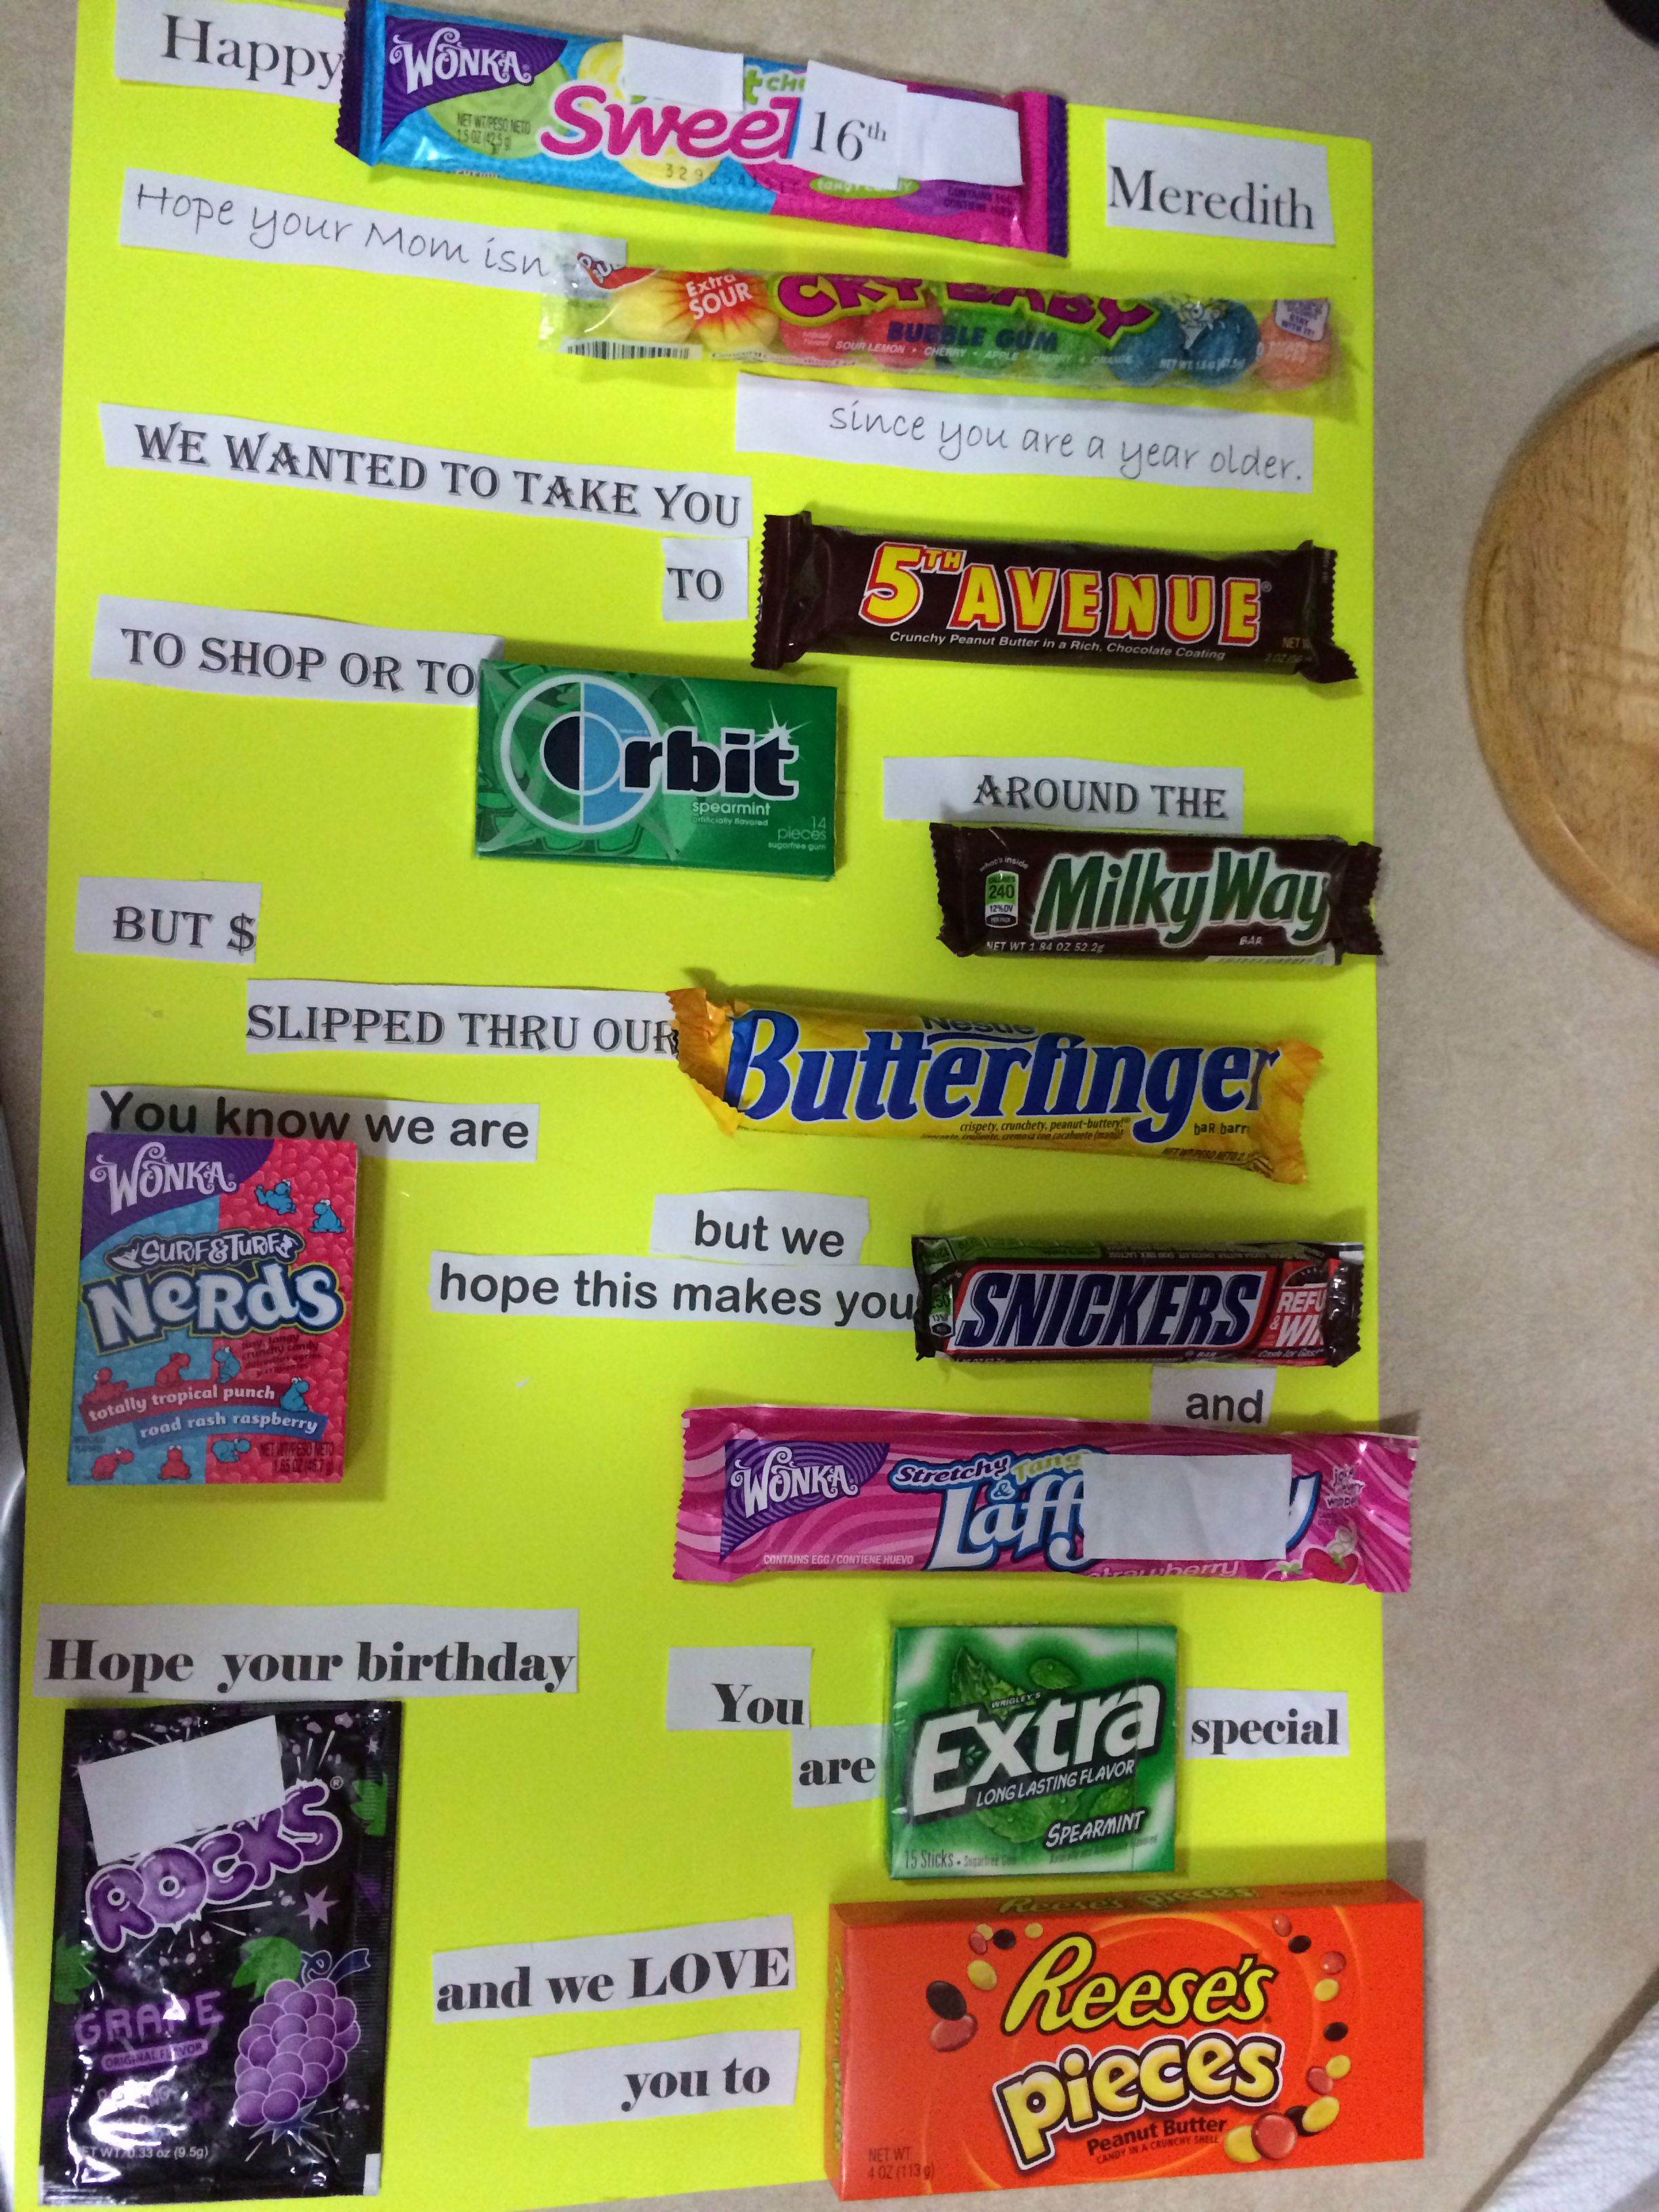 Pin By Erin Dunn On Crafts I Ve Made Sweet 16 Gifts Sweet 16 Birthday Gifts Birthday Candy Posters